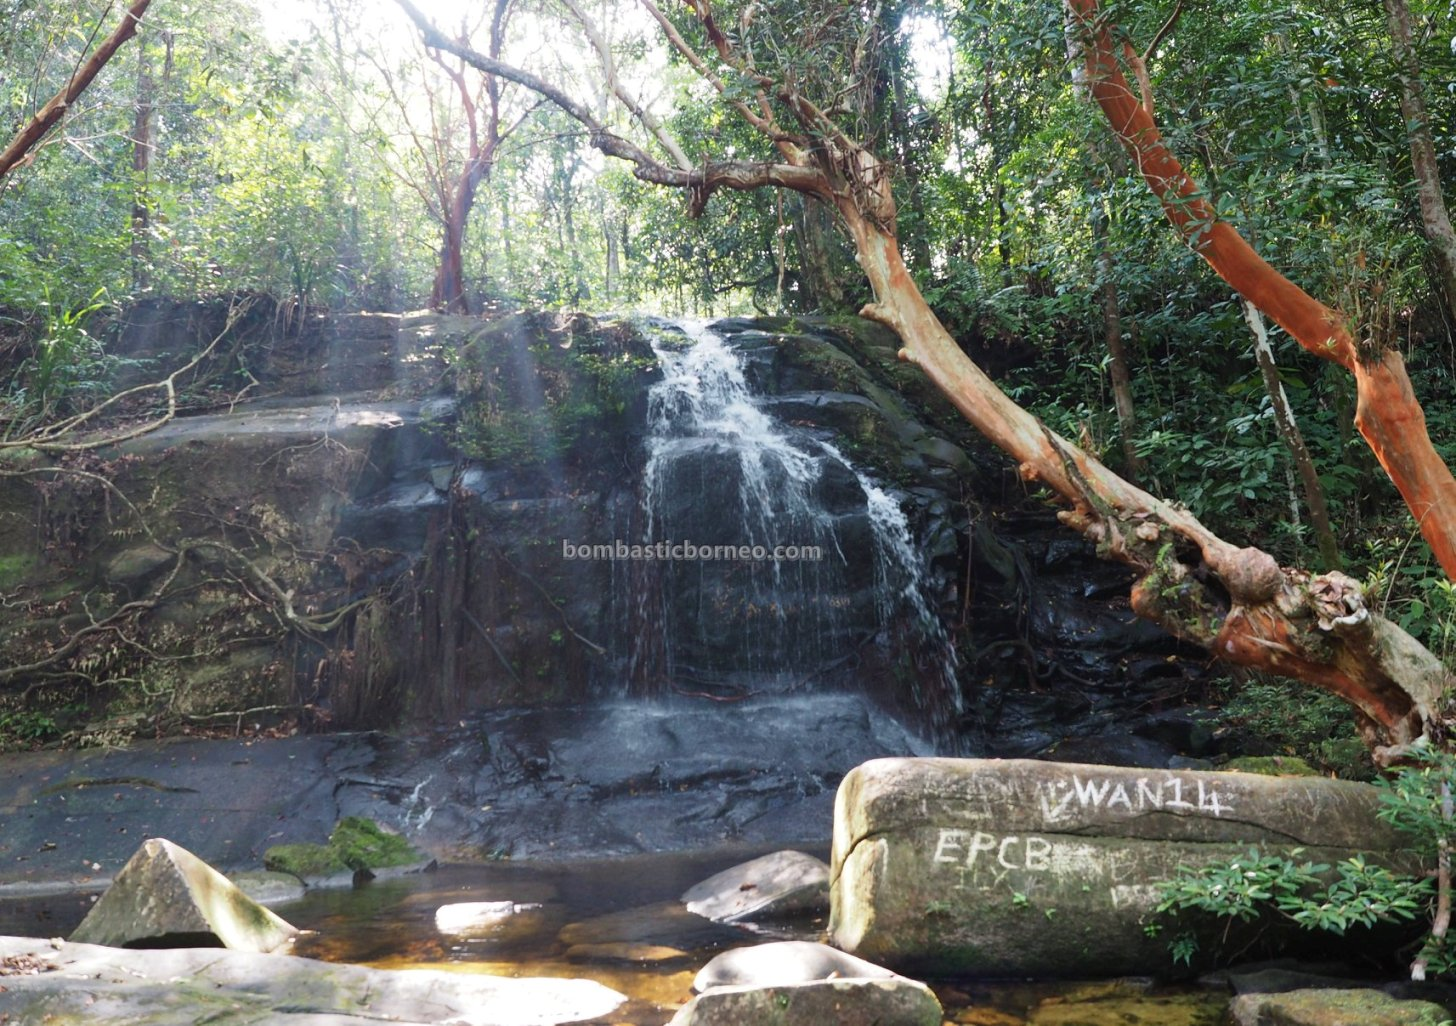 air terjun, adventure, nature, outdoor, exploration, jungle trekking, destination, Borneo, Engkilili, Sarawak, tourist attraction, travel guide, crossborder, 砂拉越婆罗洲, 瀑布旅游景点,